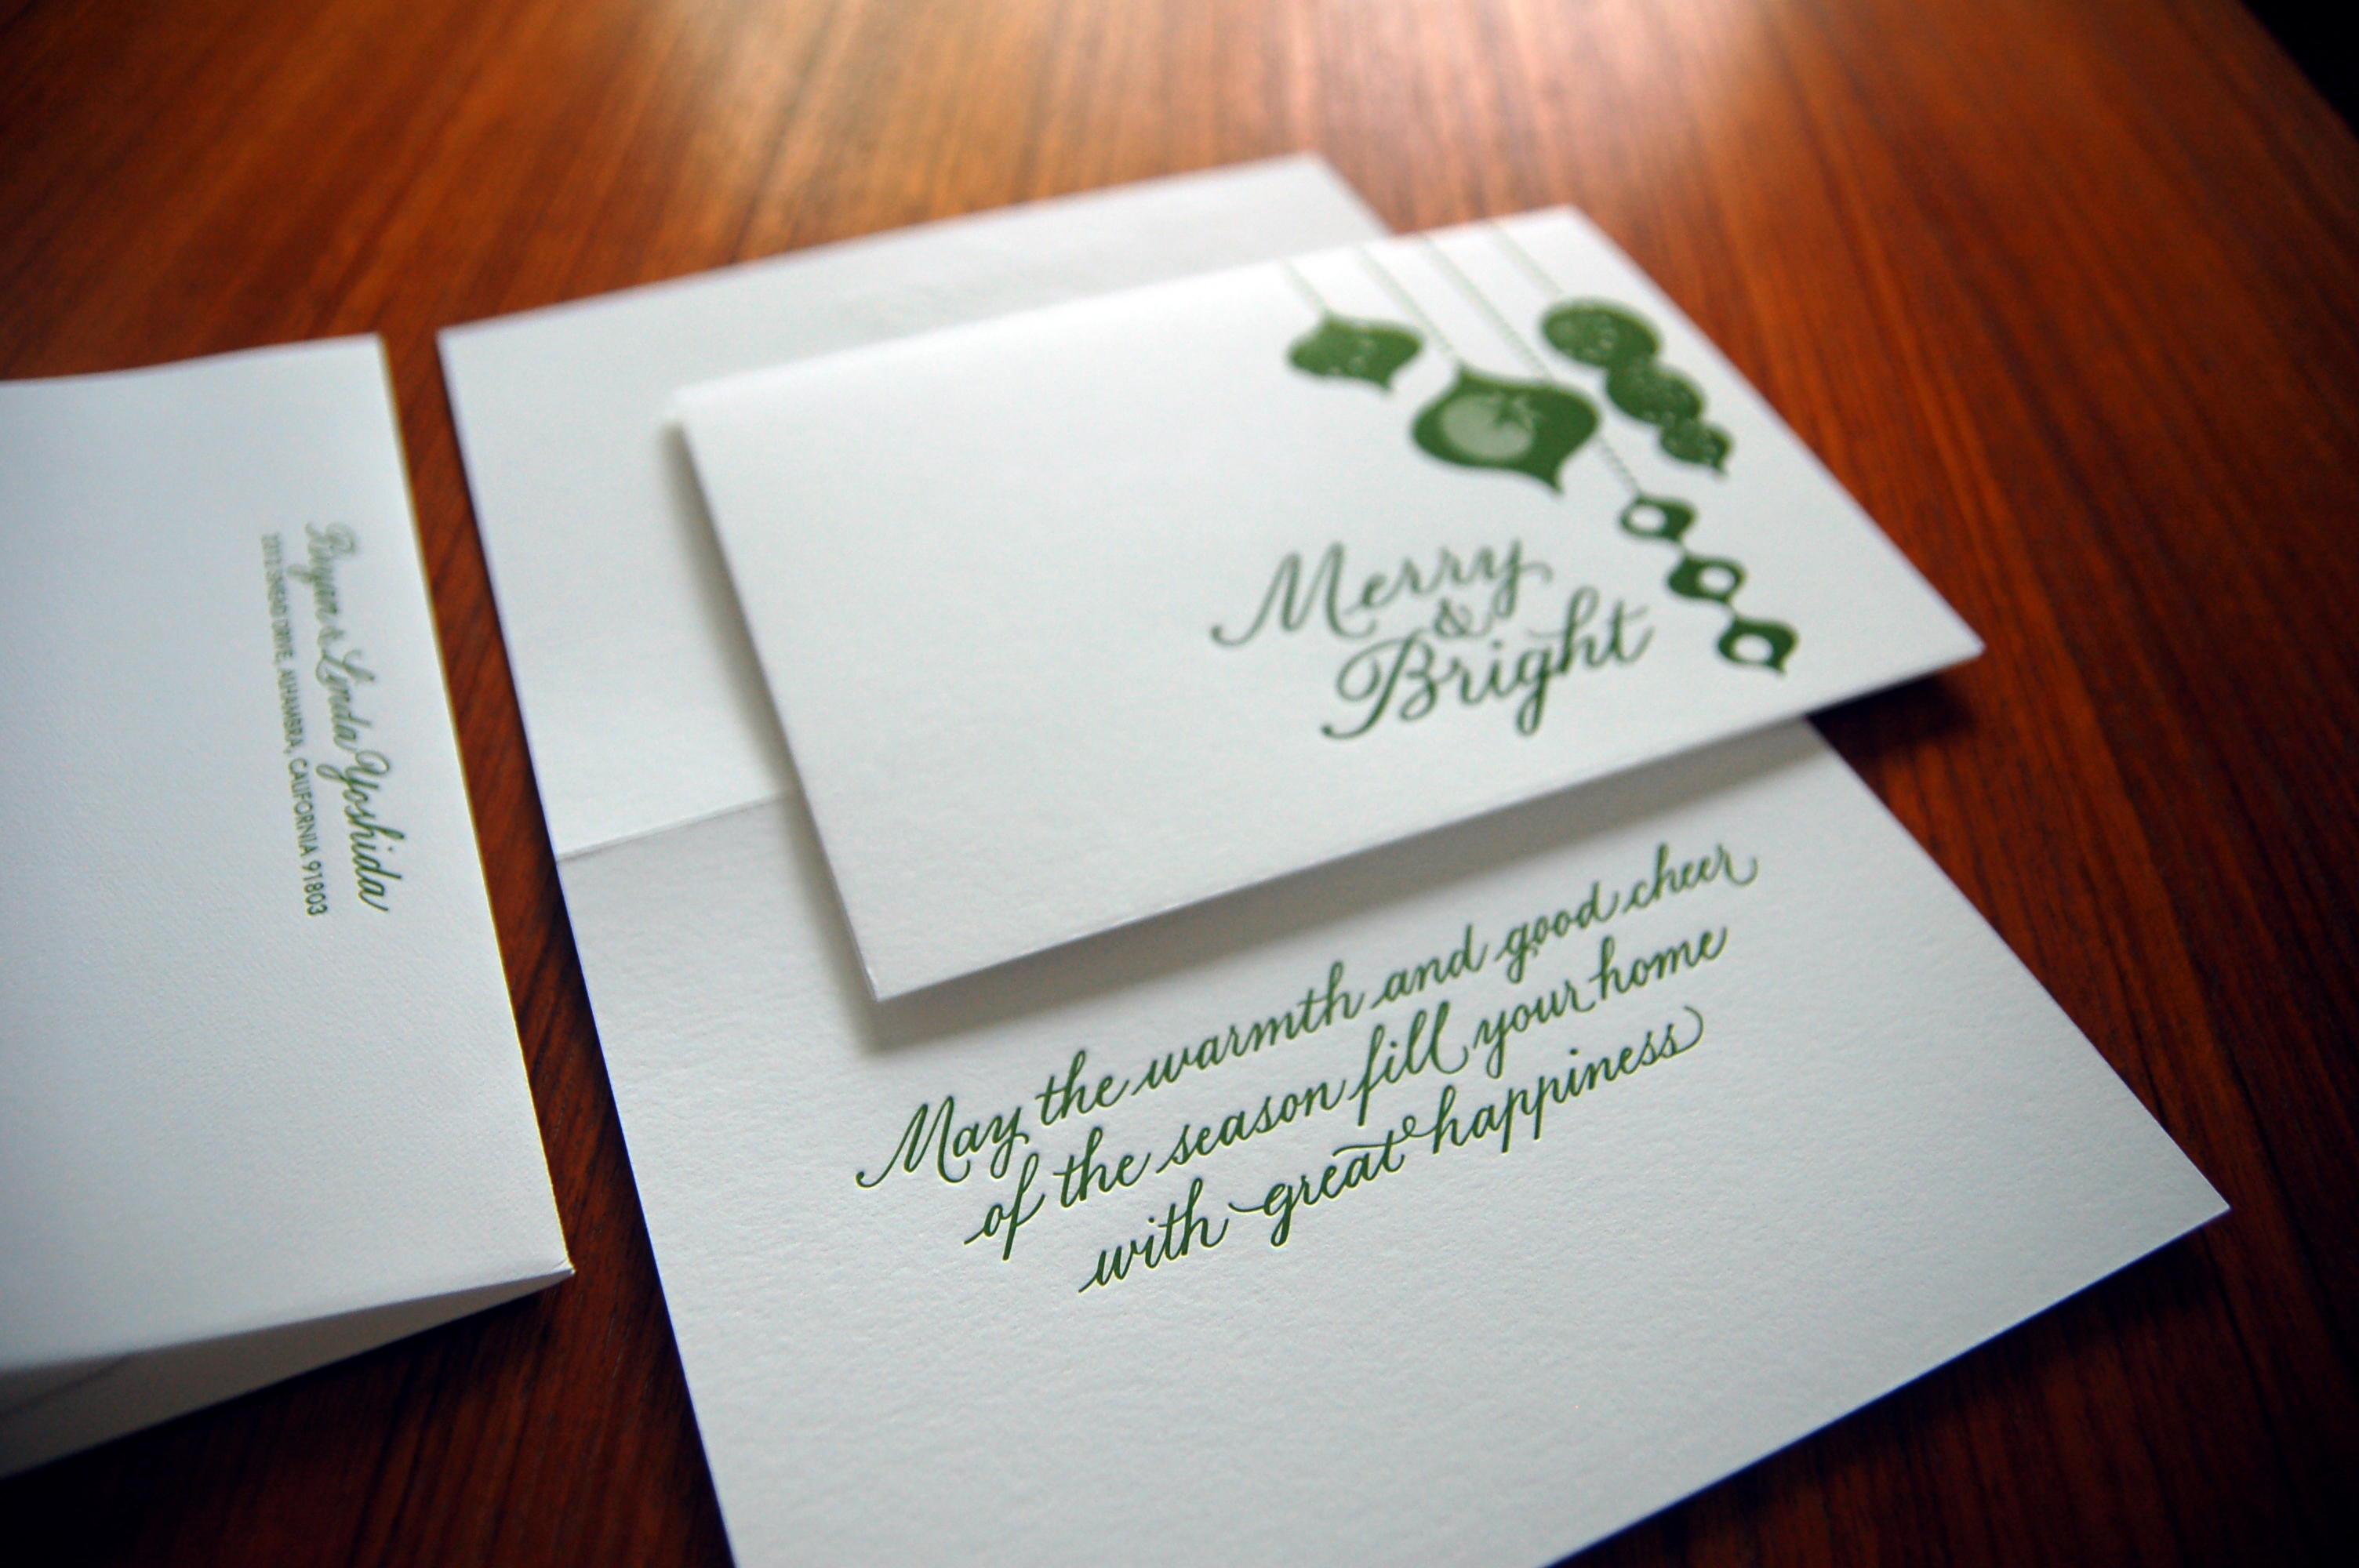 Letterpressed holiday card